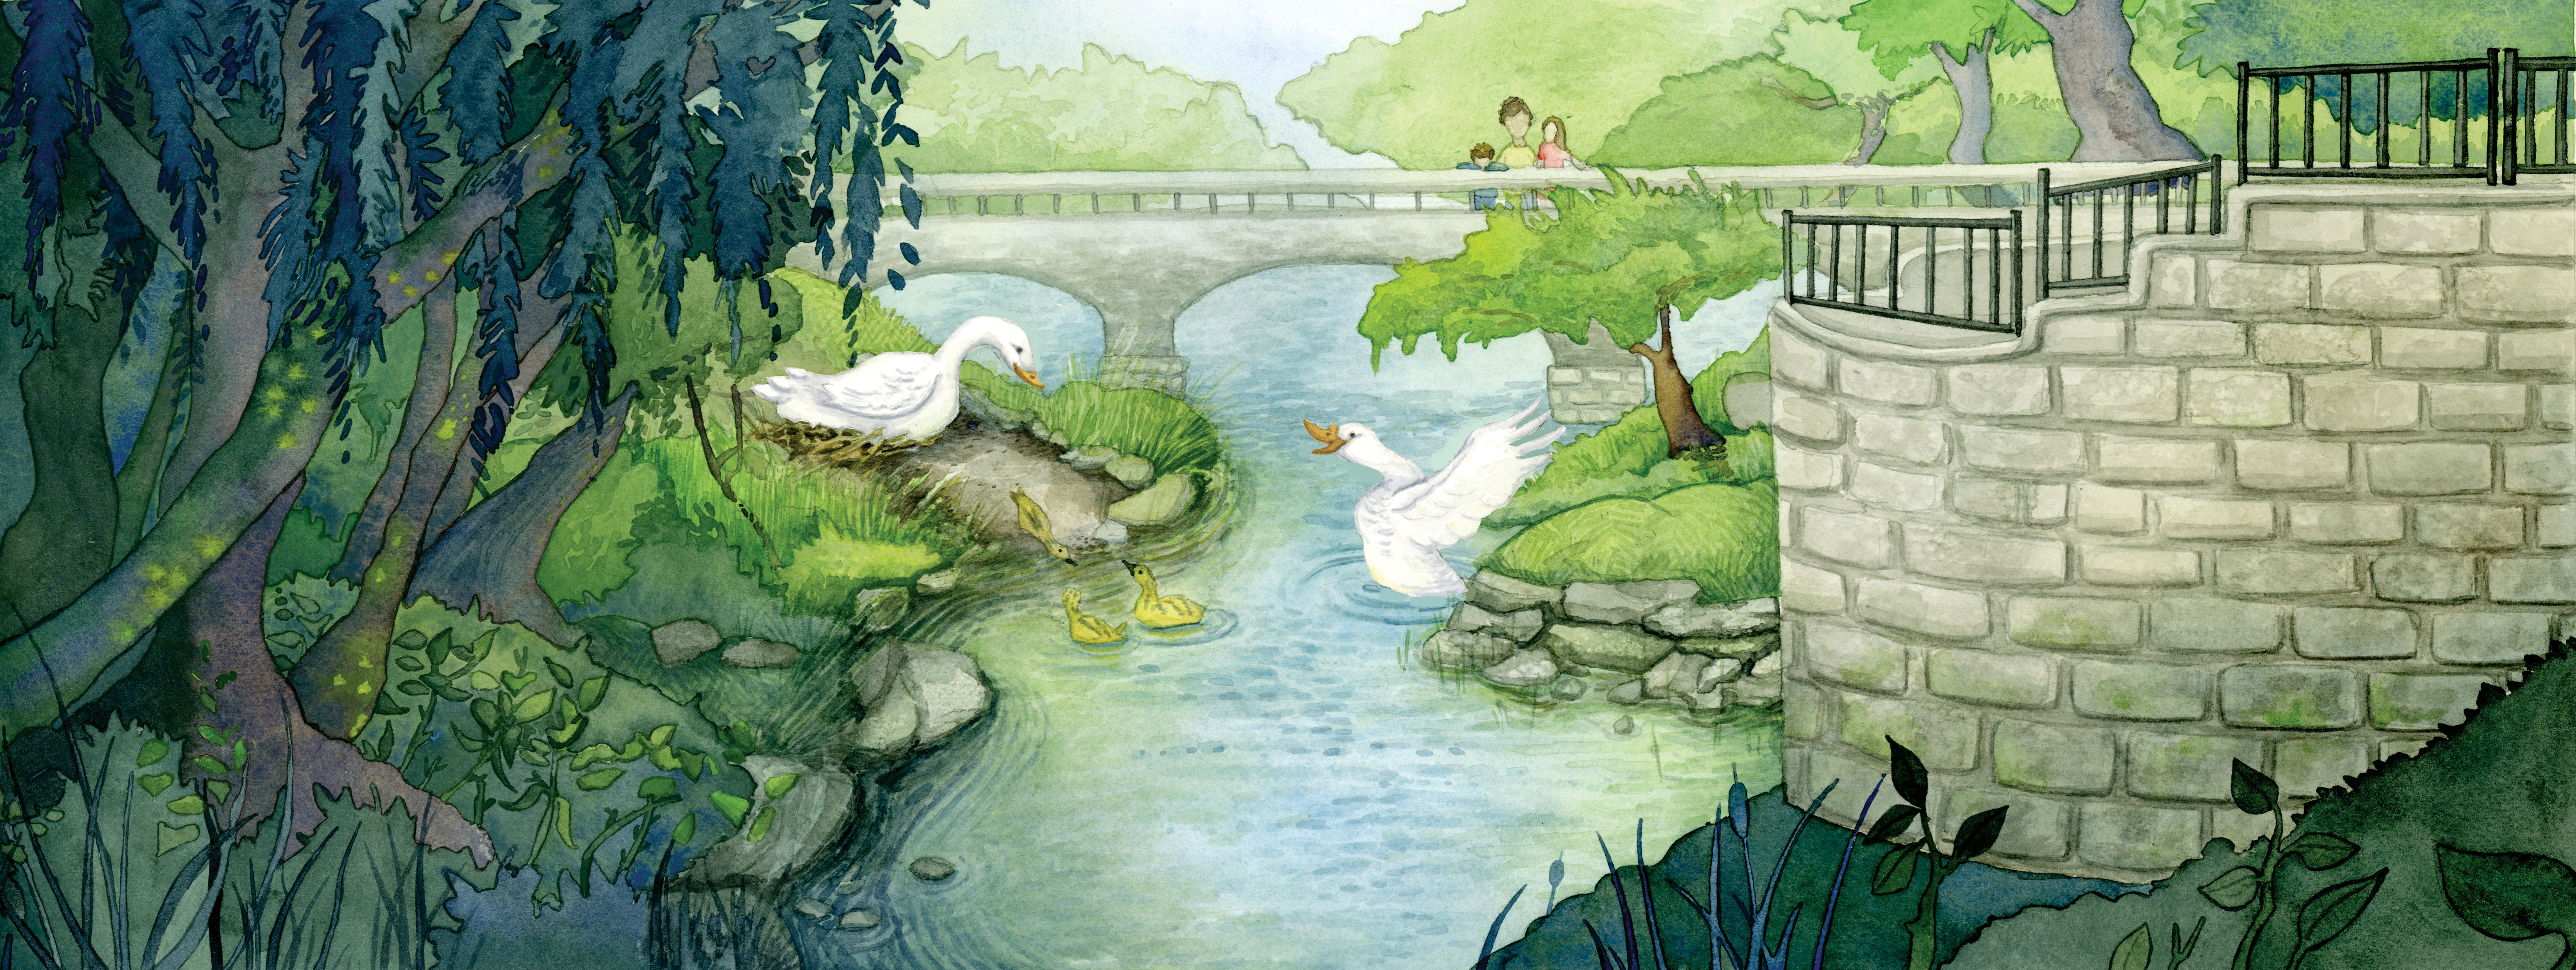 Turtle Creek_With White Geese.jpg